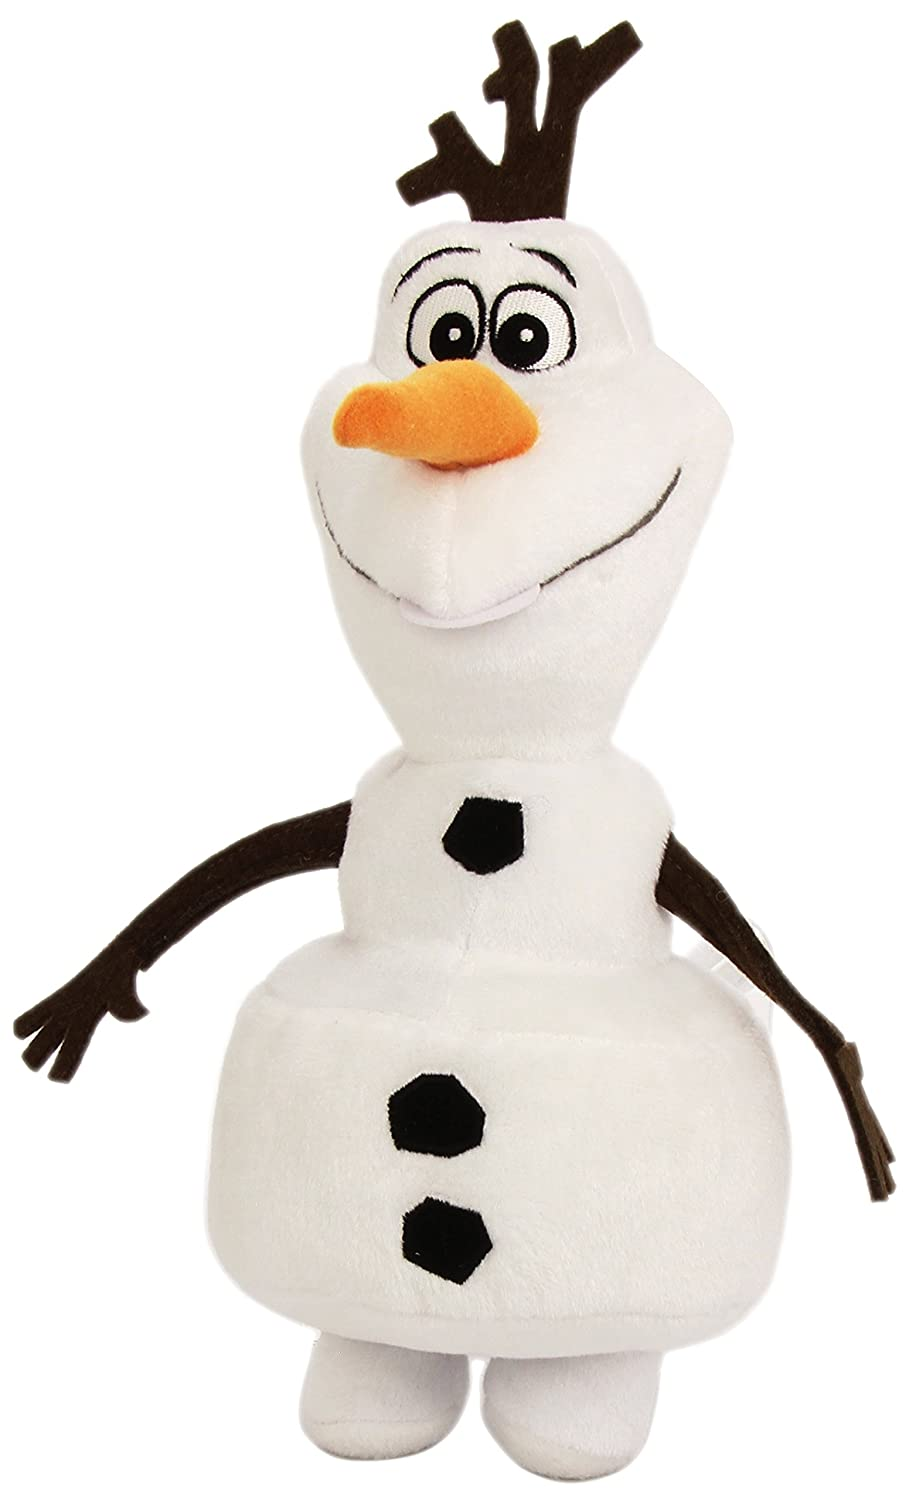 Amazon.com: Quiron Olaf Snowman Plush Medium Size 12 Frozen Disney Original 30Cm: Toys & Games